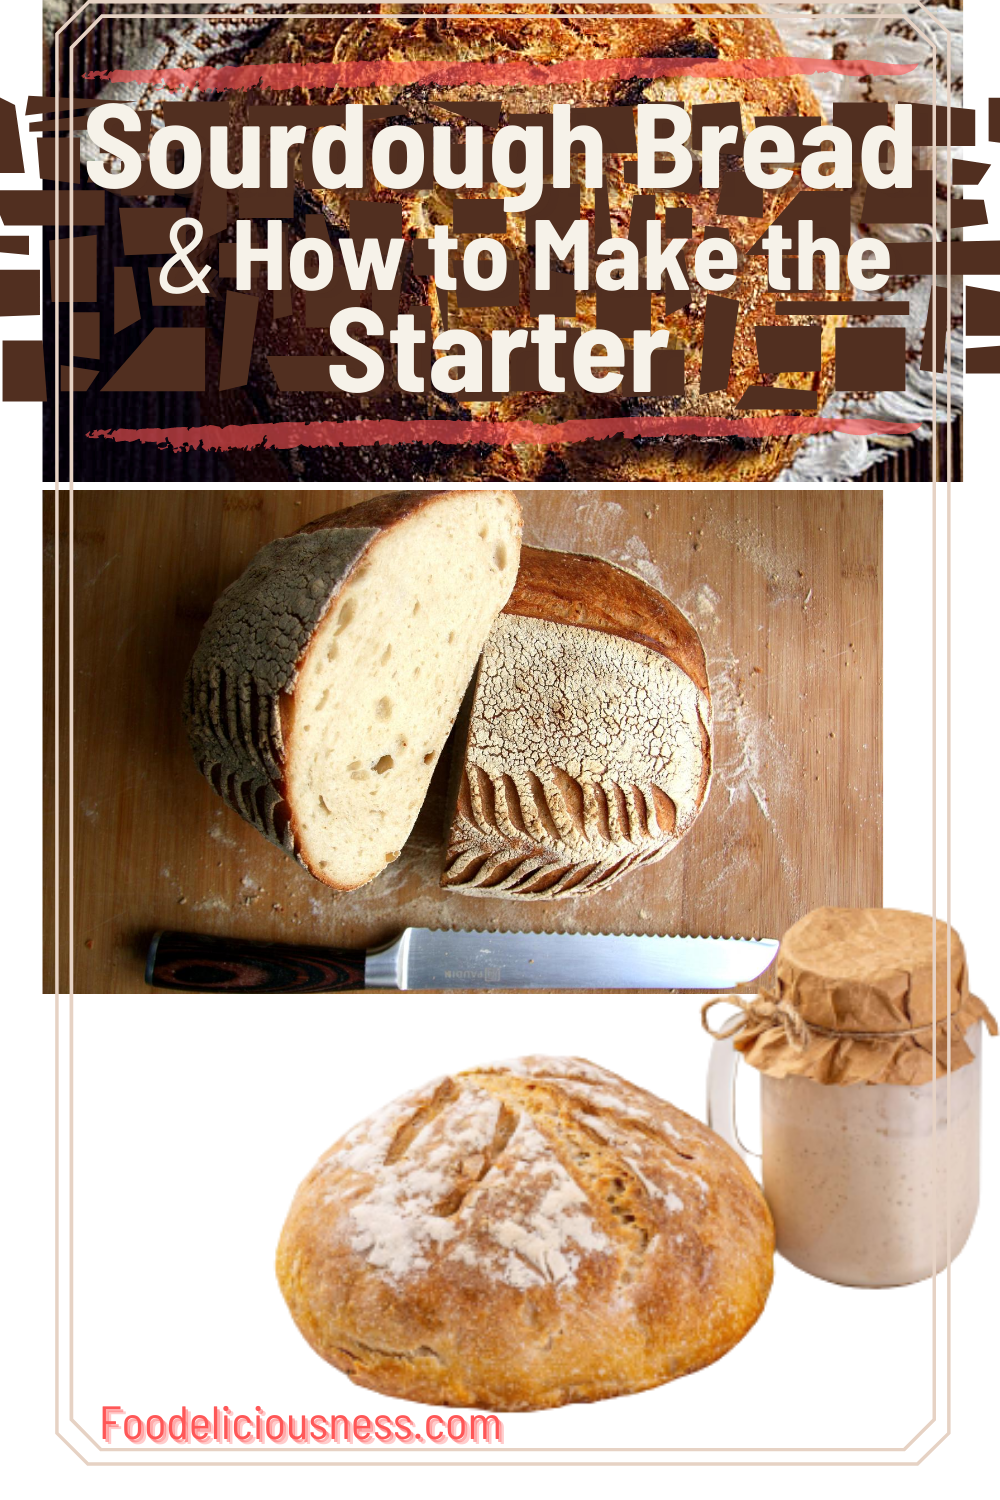 Sourdough bread is a slow-fermented traditional bread that dates back to 3000 BC in ancient Egypt Furthermore, the Sourdough Starter is a fermented mix of flour and natural yeasts that help this bread rise. This sourdough starter is what makes this bread a healthier alternative from other regular bread. Let\'s learn a little more about the Sourdough bread and starter. #Sourdoughbreadrecipe #sourdoughstarterrecipe #Bestsourdoughbread @Foodeliciousness